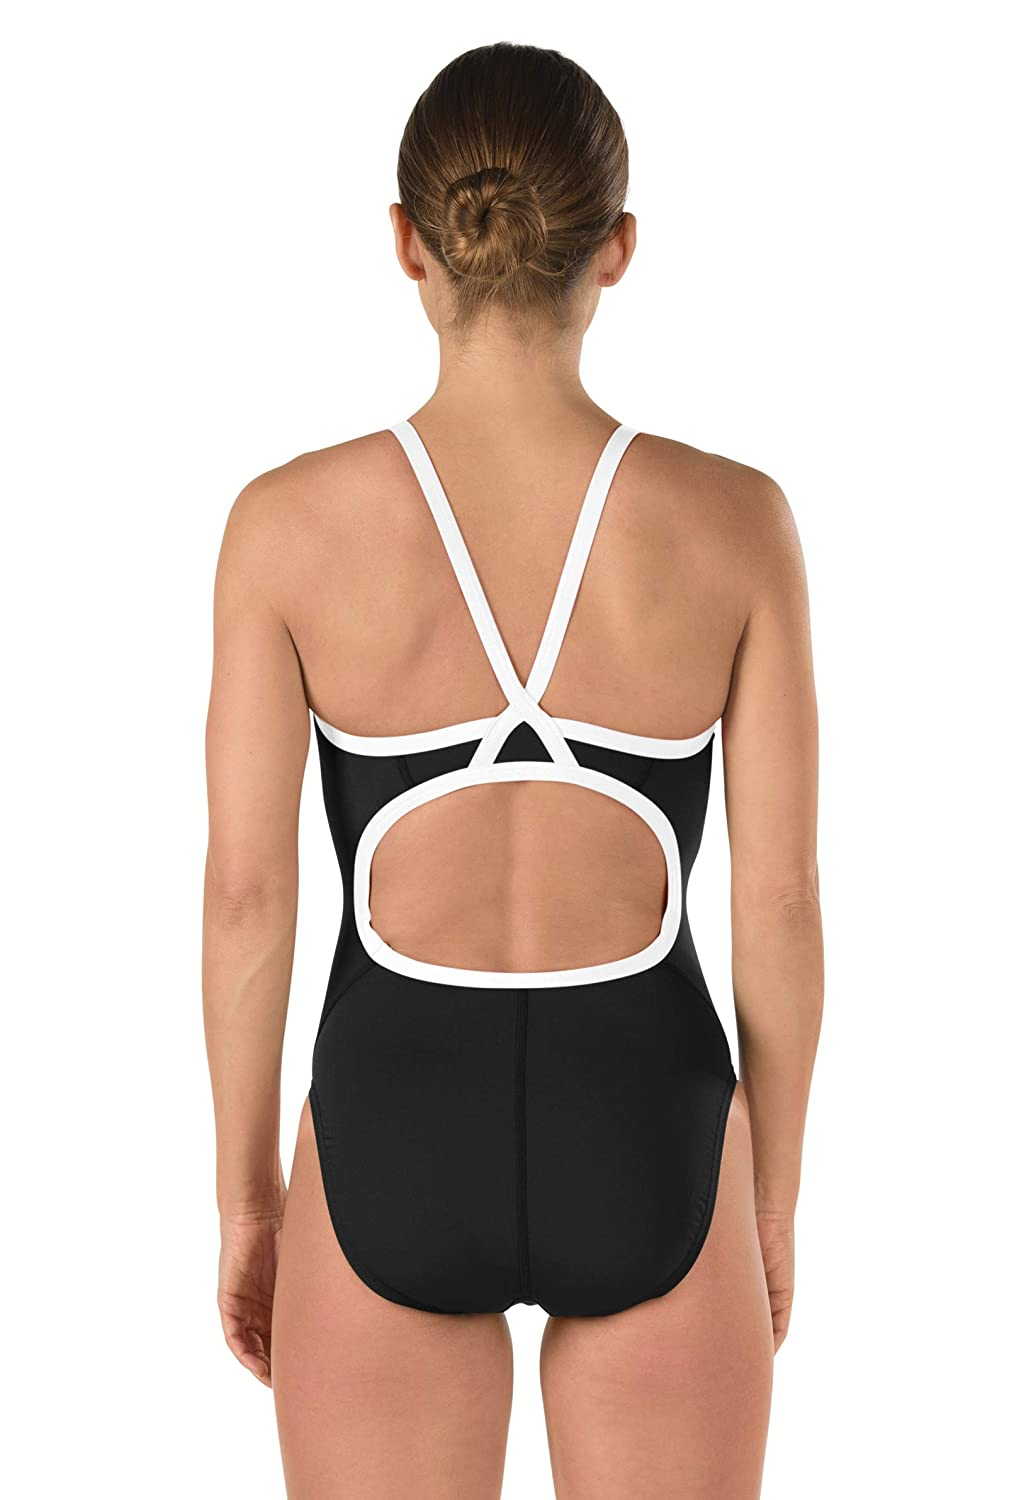 Speedo Female One Piece Swimsuit Solid Flyback Training Suit 819016